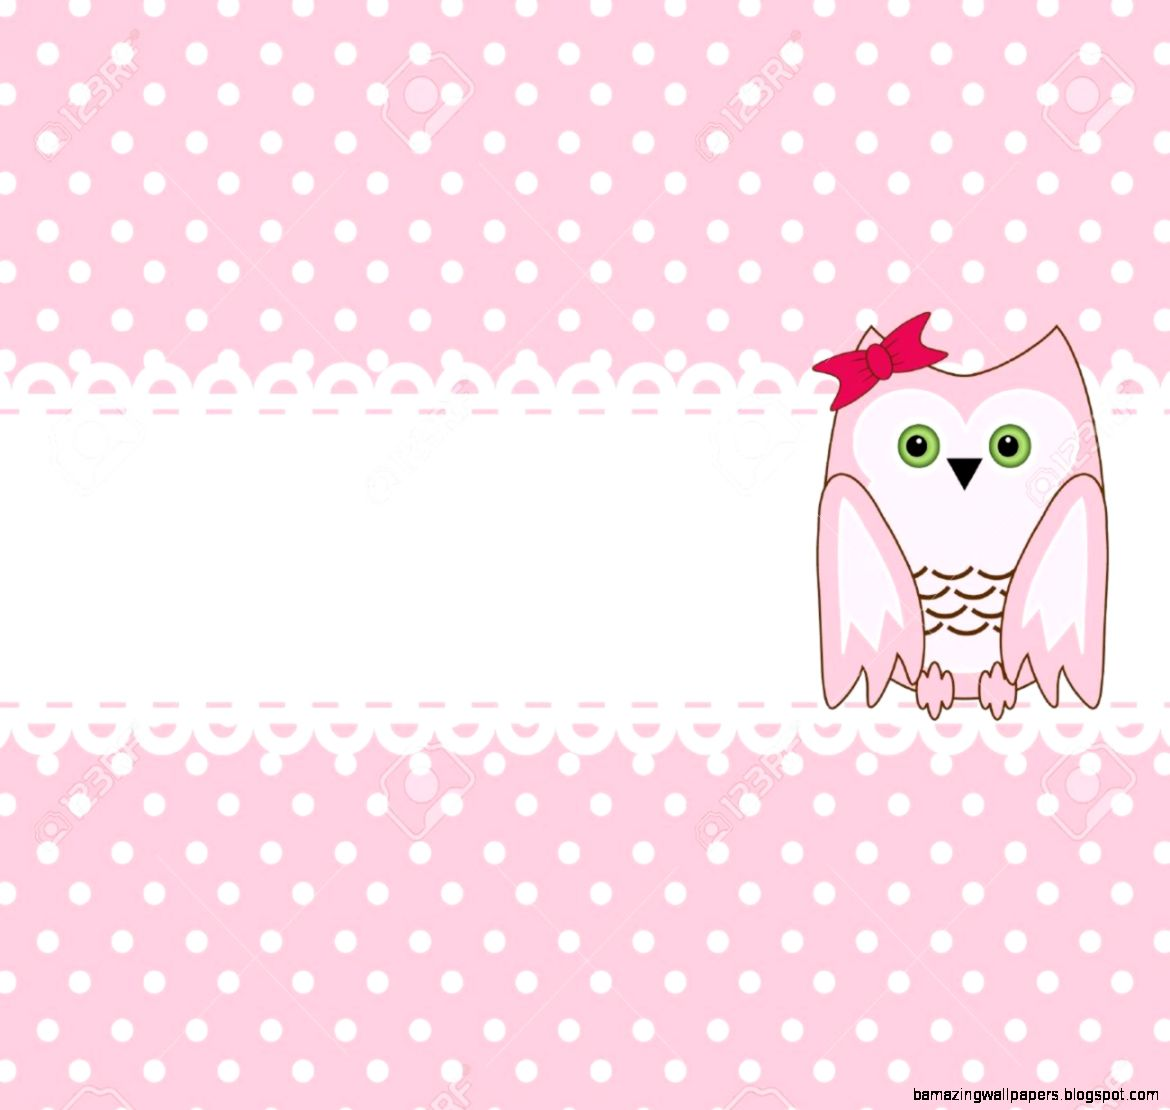 Cute Pink Owl Wallpaper | Amazing Wallpapers